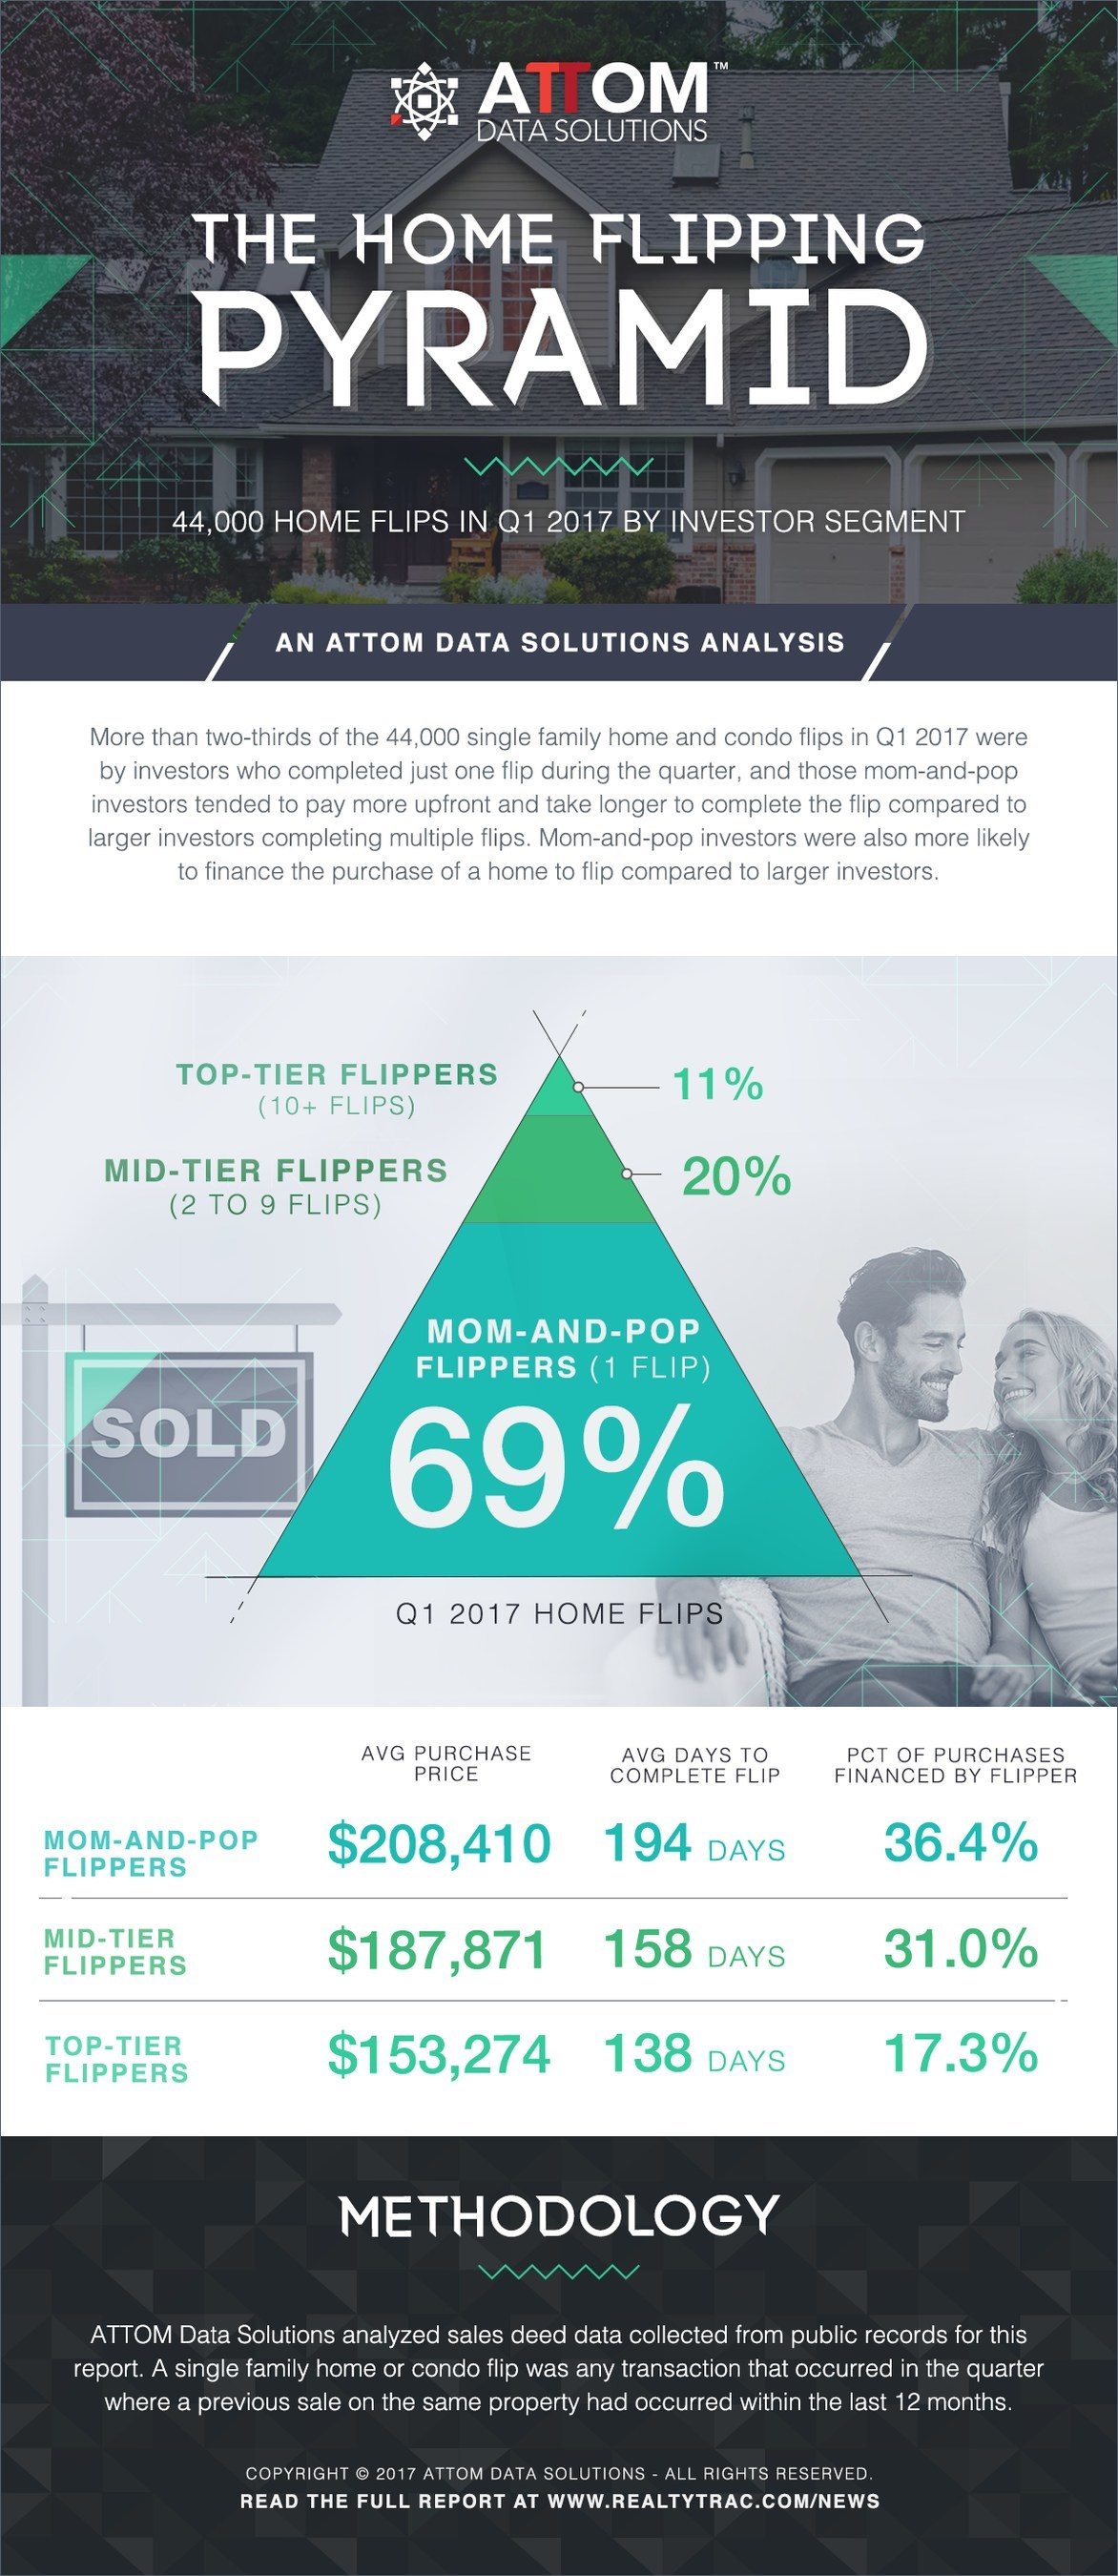 The Home Flipping Pyramid Infographic